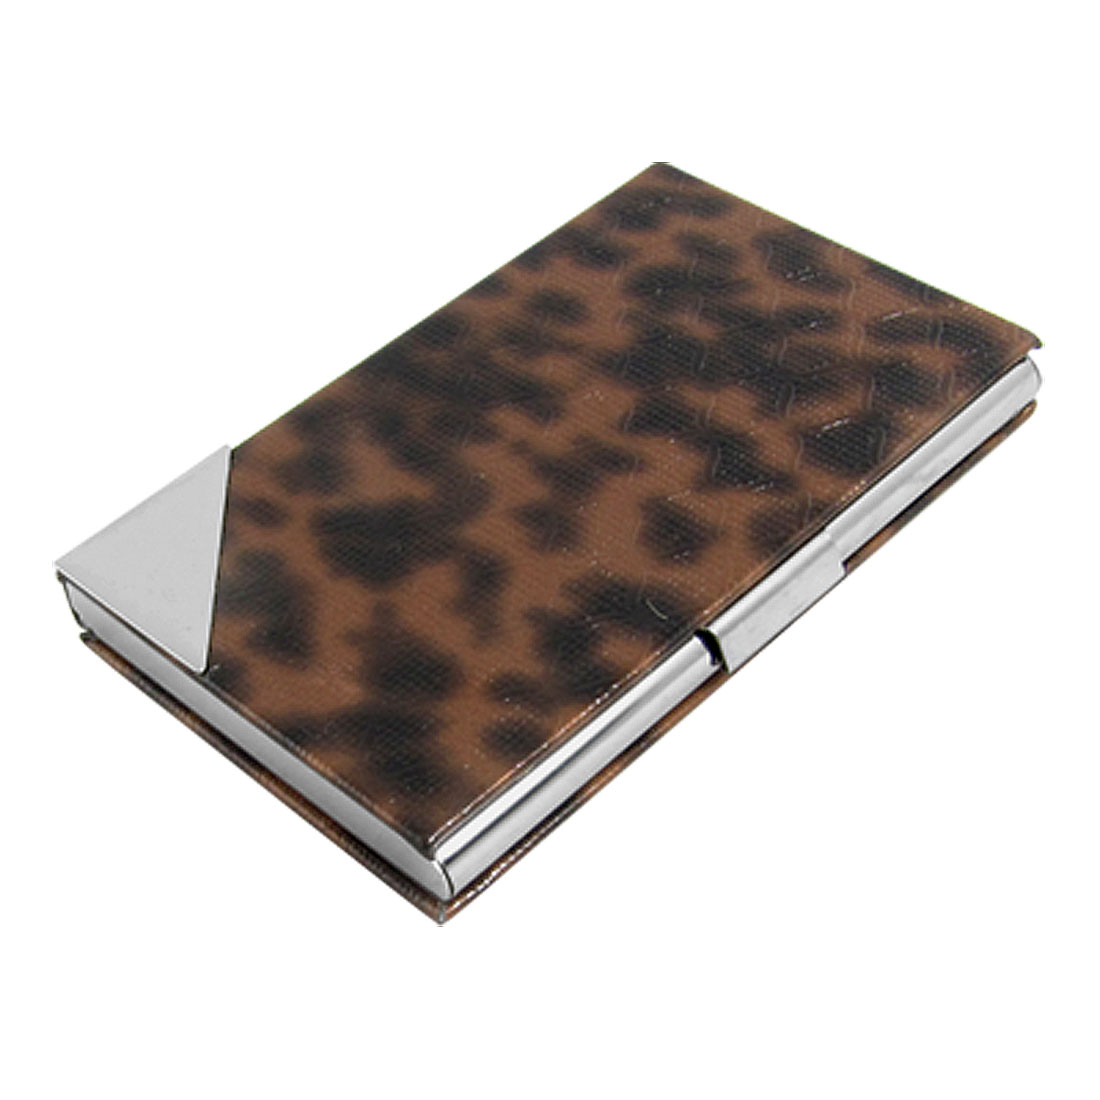 Metal Business Credit ID Card Case Holder with Leather Covers